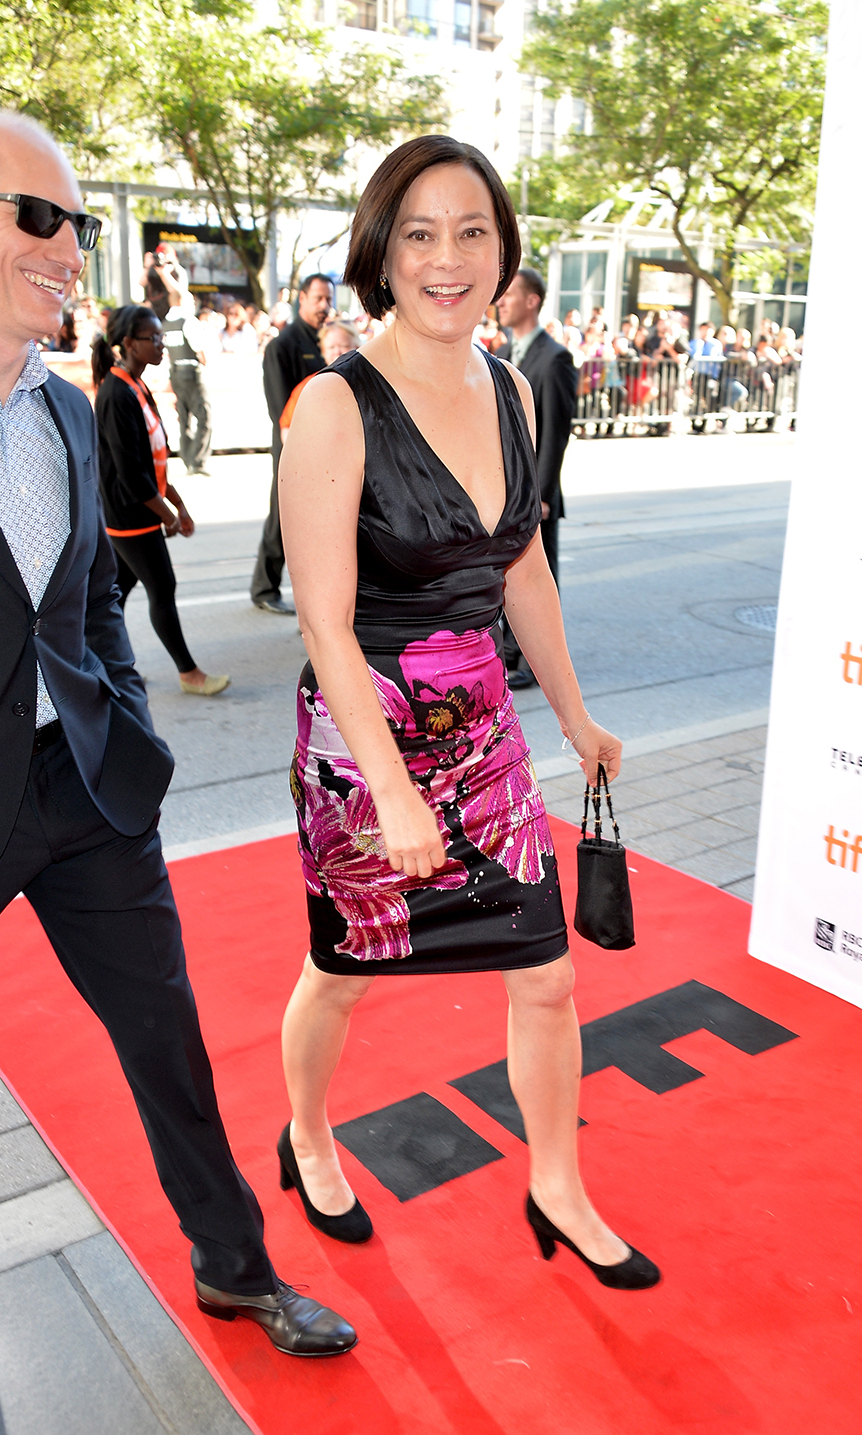 Actress Meg Tilly arrives at the premiere of The Big Chill at the 2013 Toronto International Film Festival.